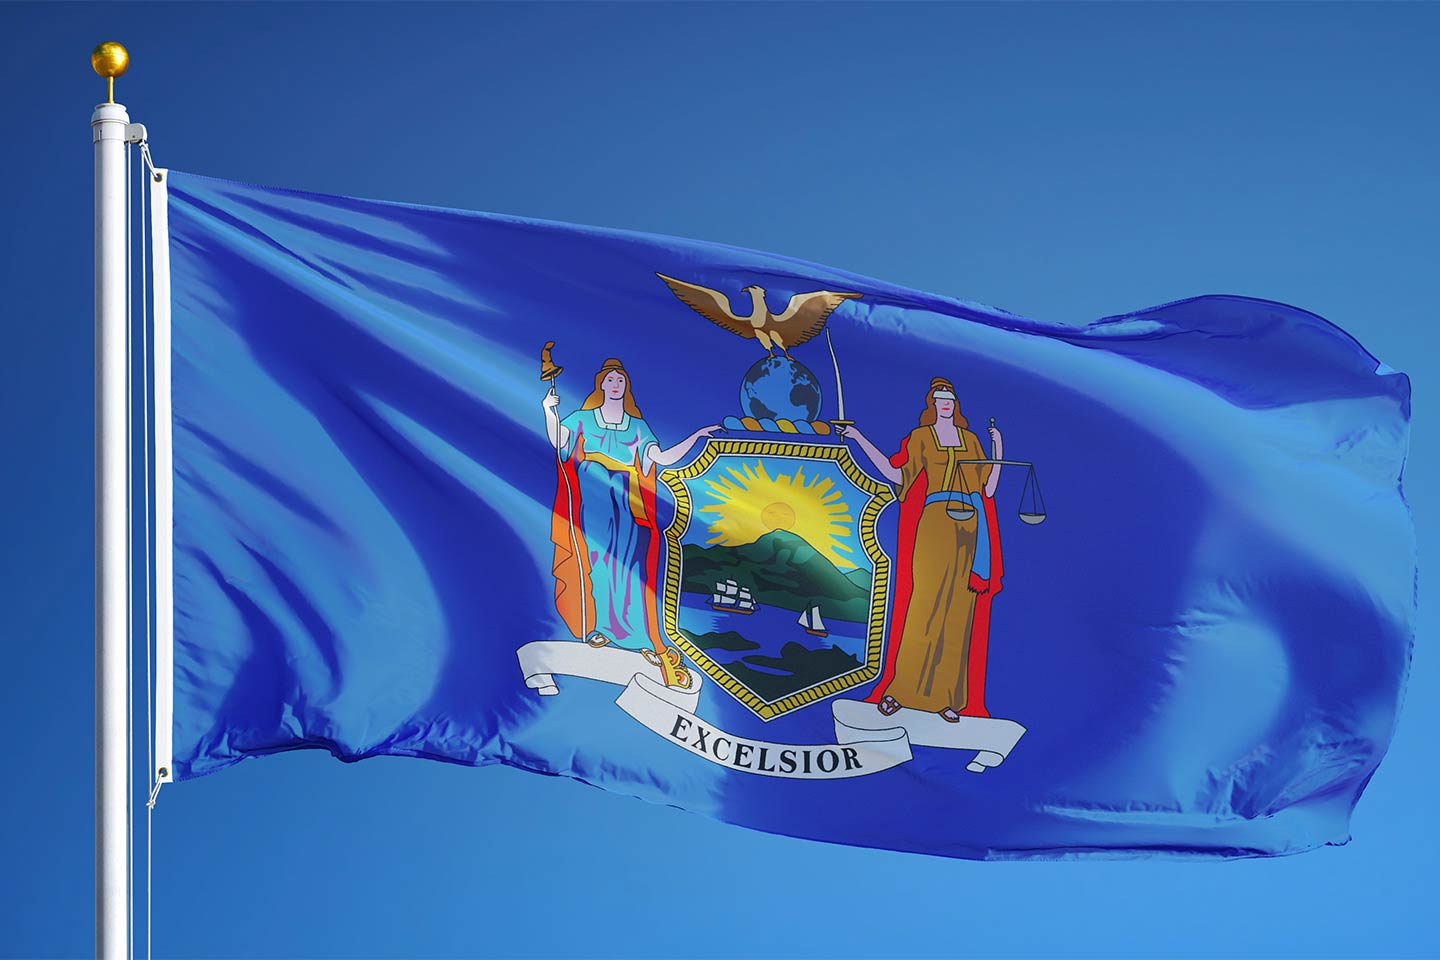 New York state flag flying atop a flagpole against a blue sky